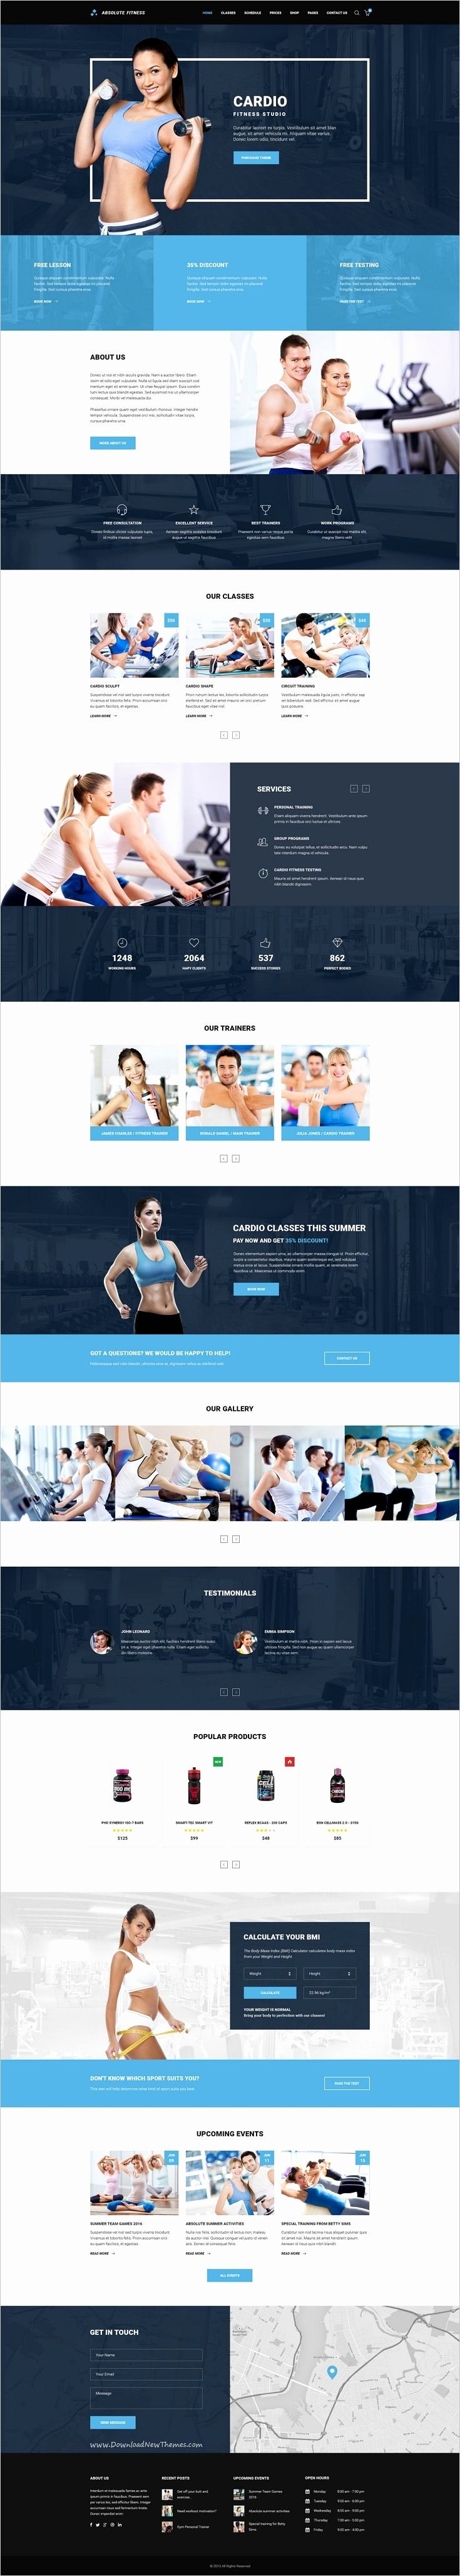 Personal Trainer Website Template Beautiful Best 25 Boxing for Fitness Ideas On Pinterest